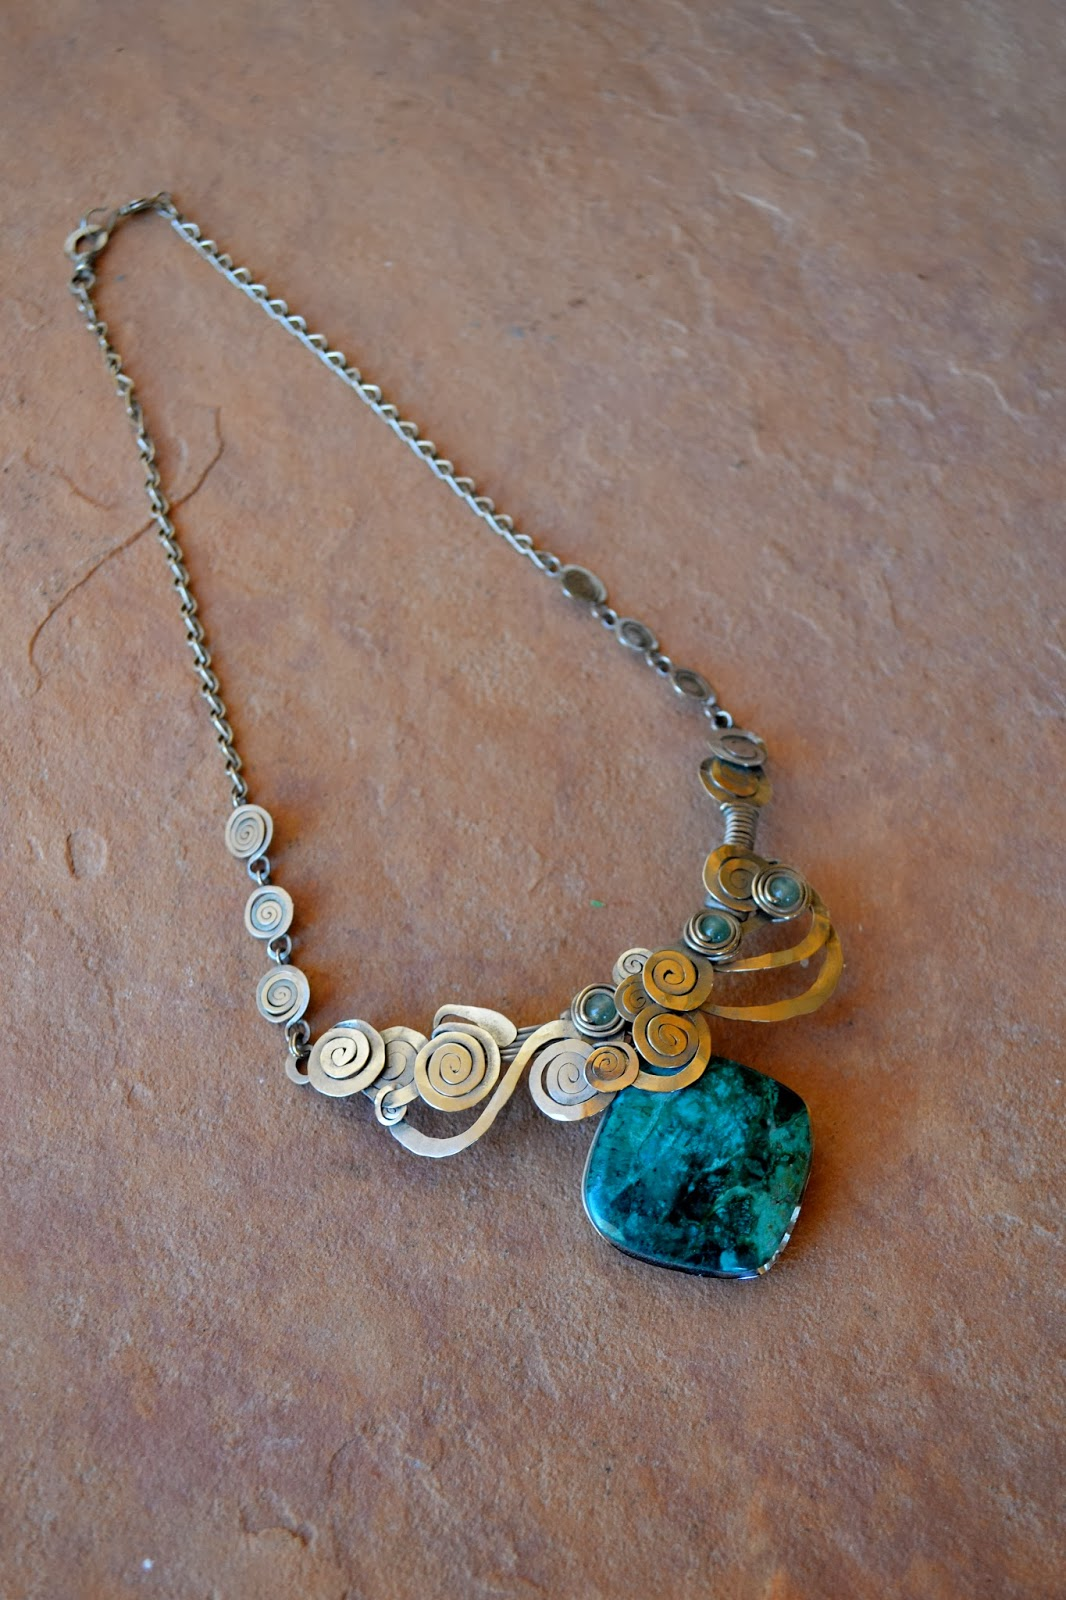 Spiral Silver Necklace with Healing Turquoise Gemstone